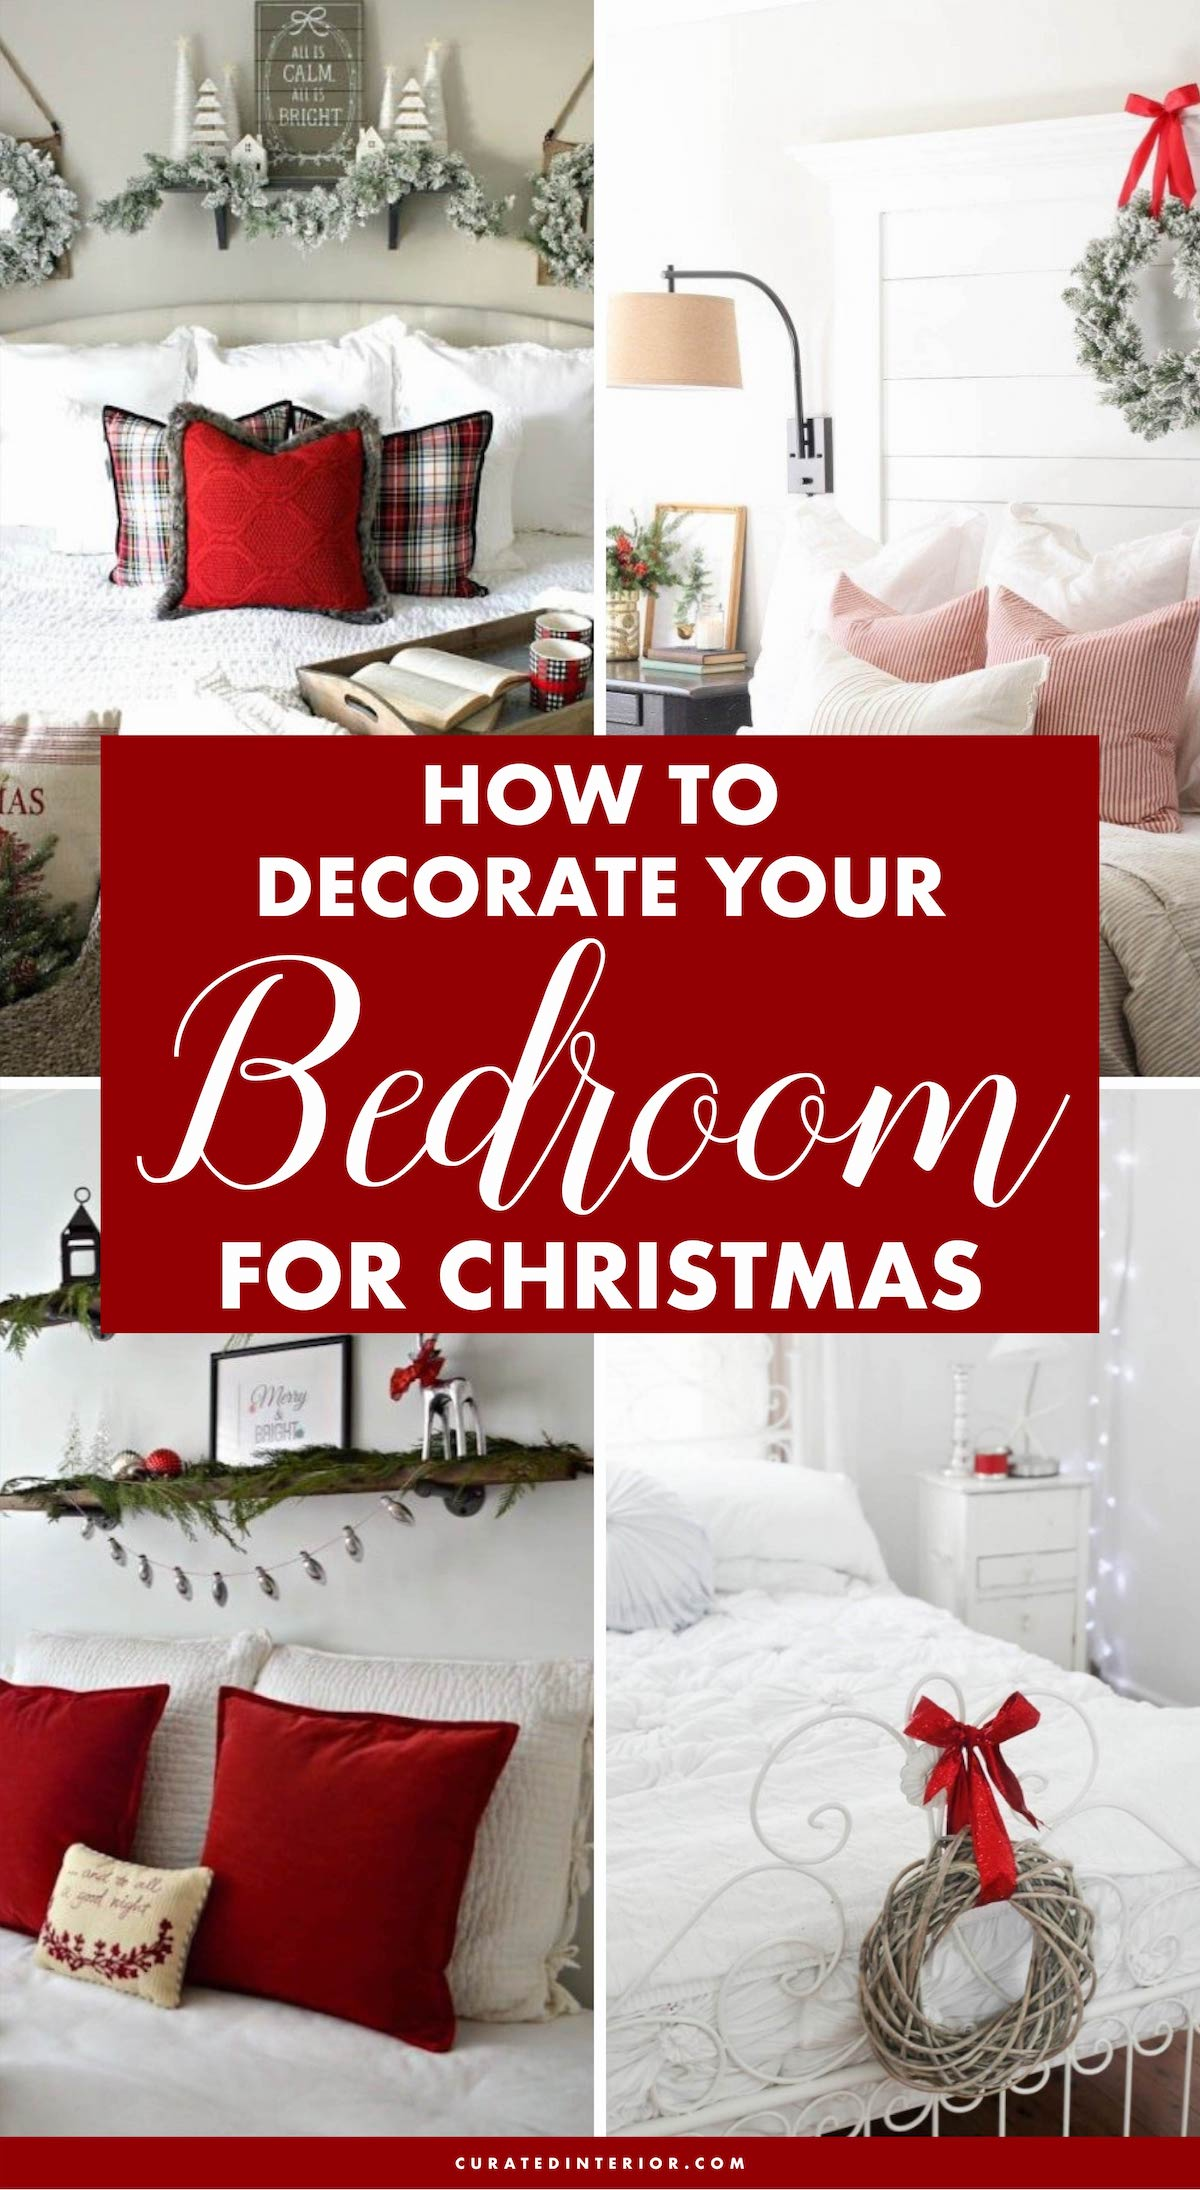 How to Decorate Your Bedroom for Christmas –25 ideas! #ChristmasDecor #BedroomDecor #ChristmasHome